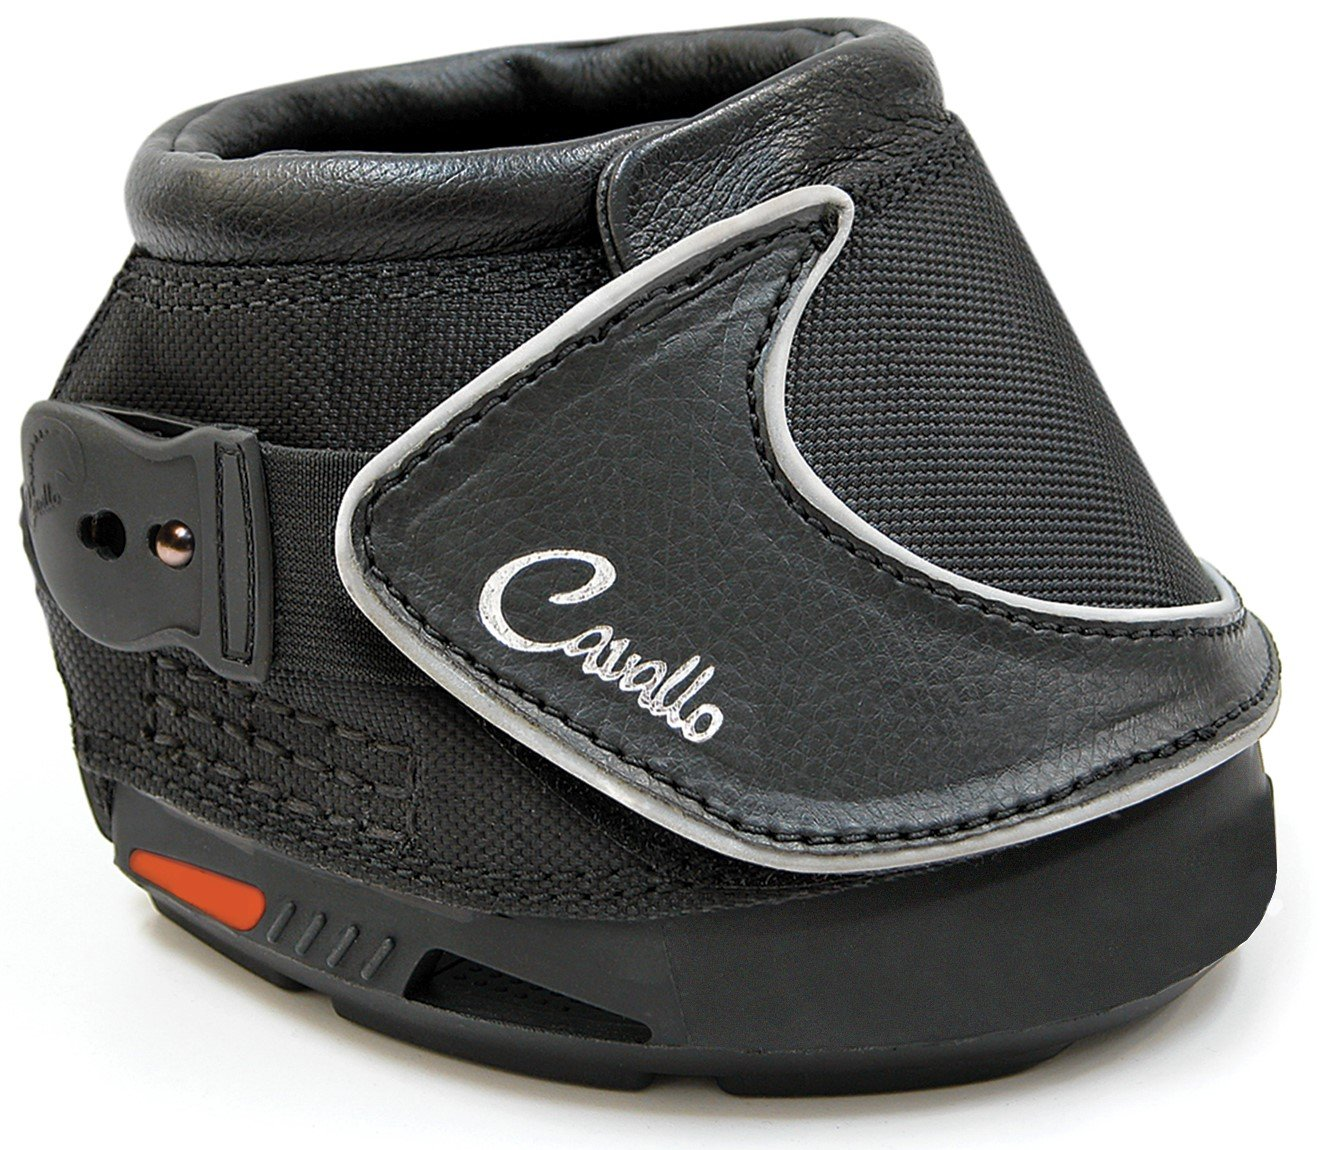 Cavallo Horse & Rider Sport Regular Sole Hoof Boot, Size 2 by Cavallo Horse & Rider (Image #1)